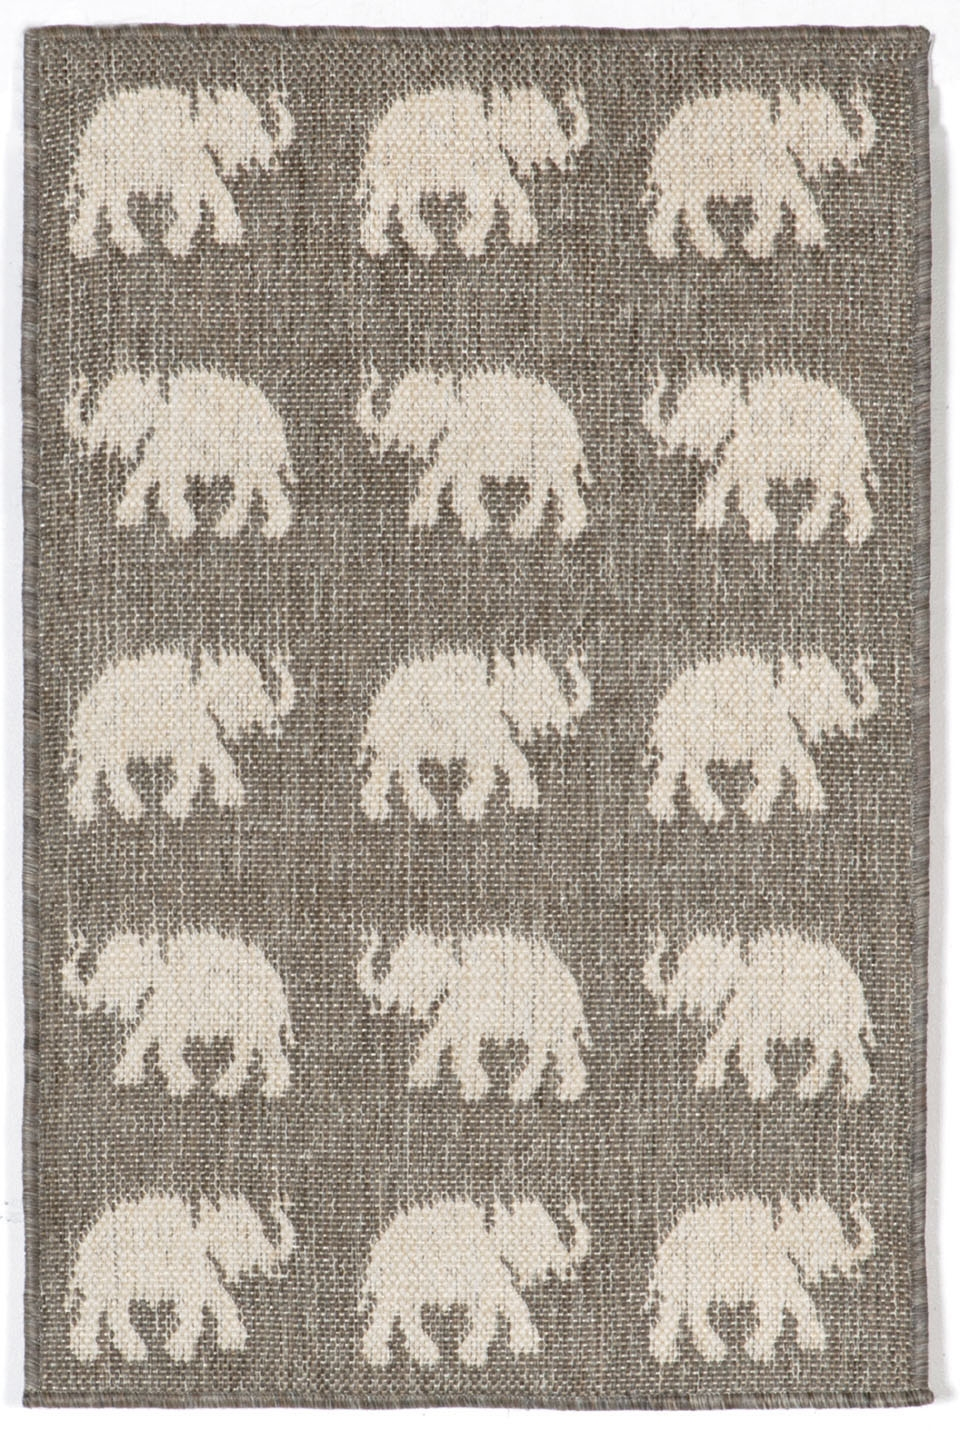 Trans-Ocean Terrace 1767/68 Elephants Silver Area Rug